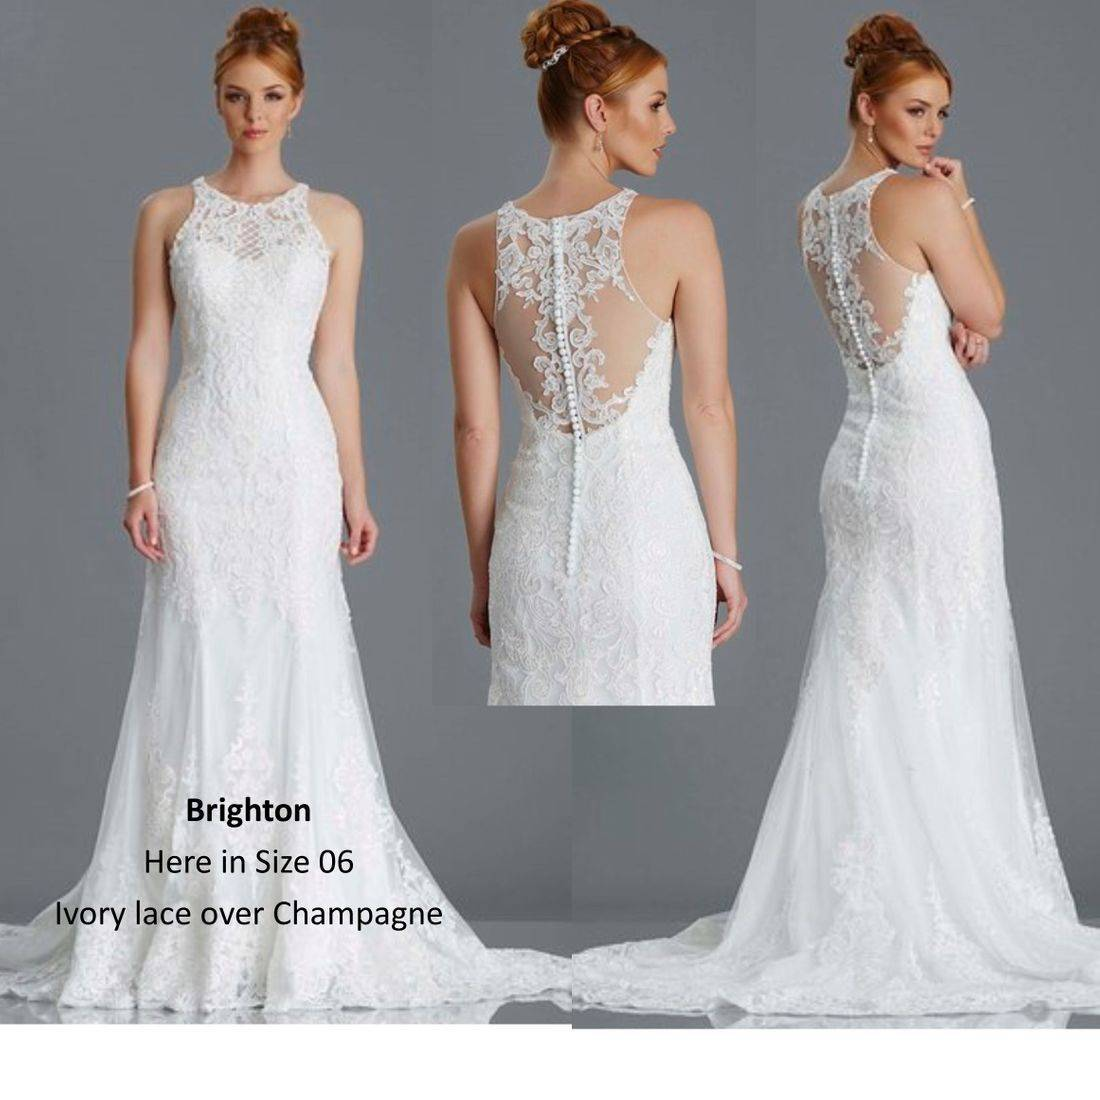 Illusion back with lace and beading